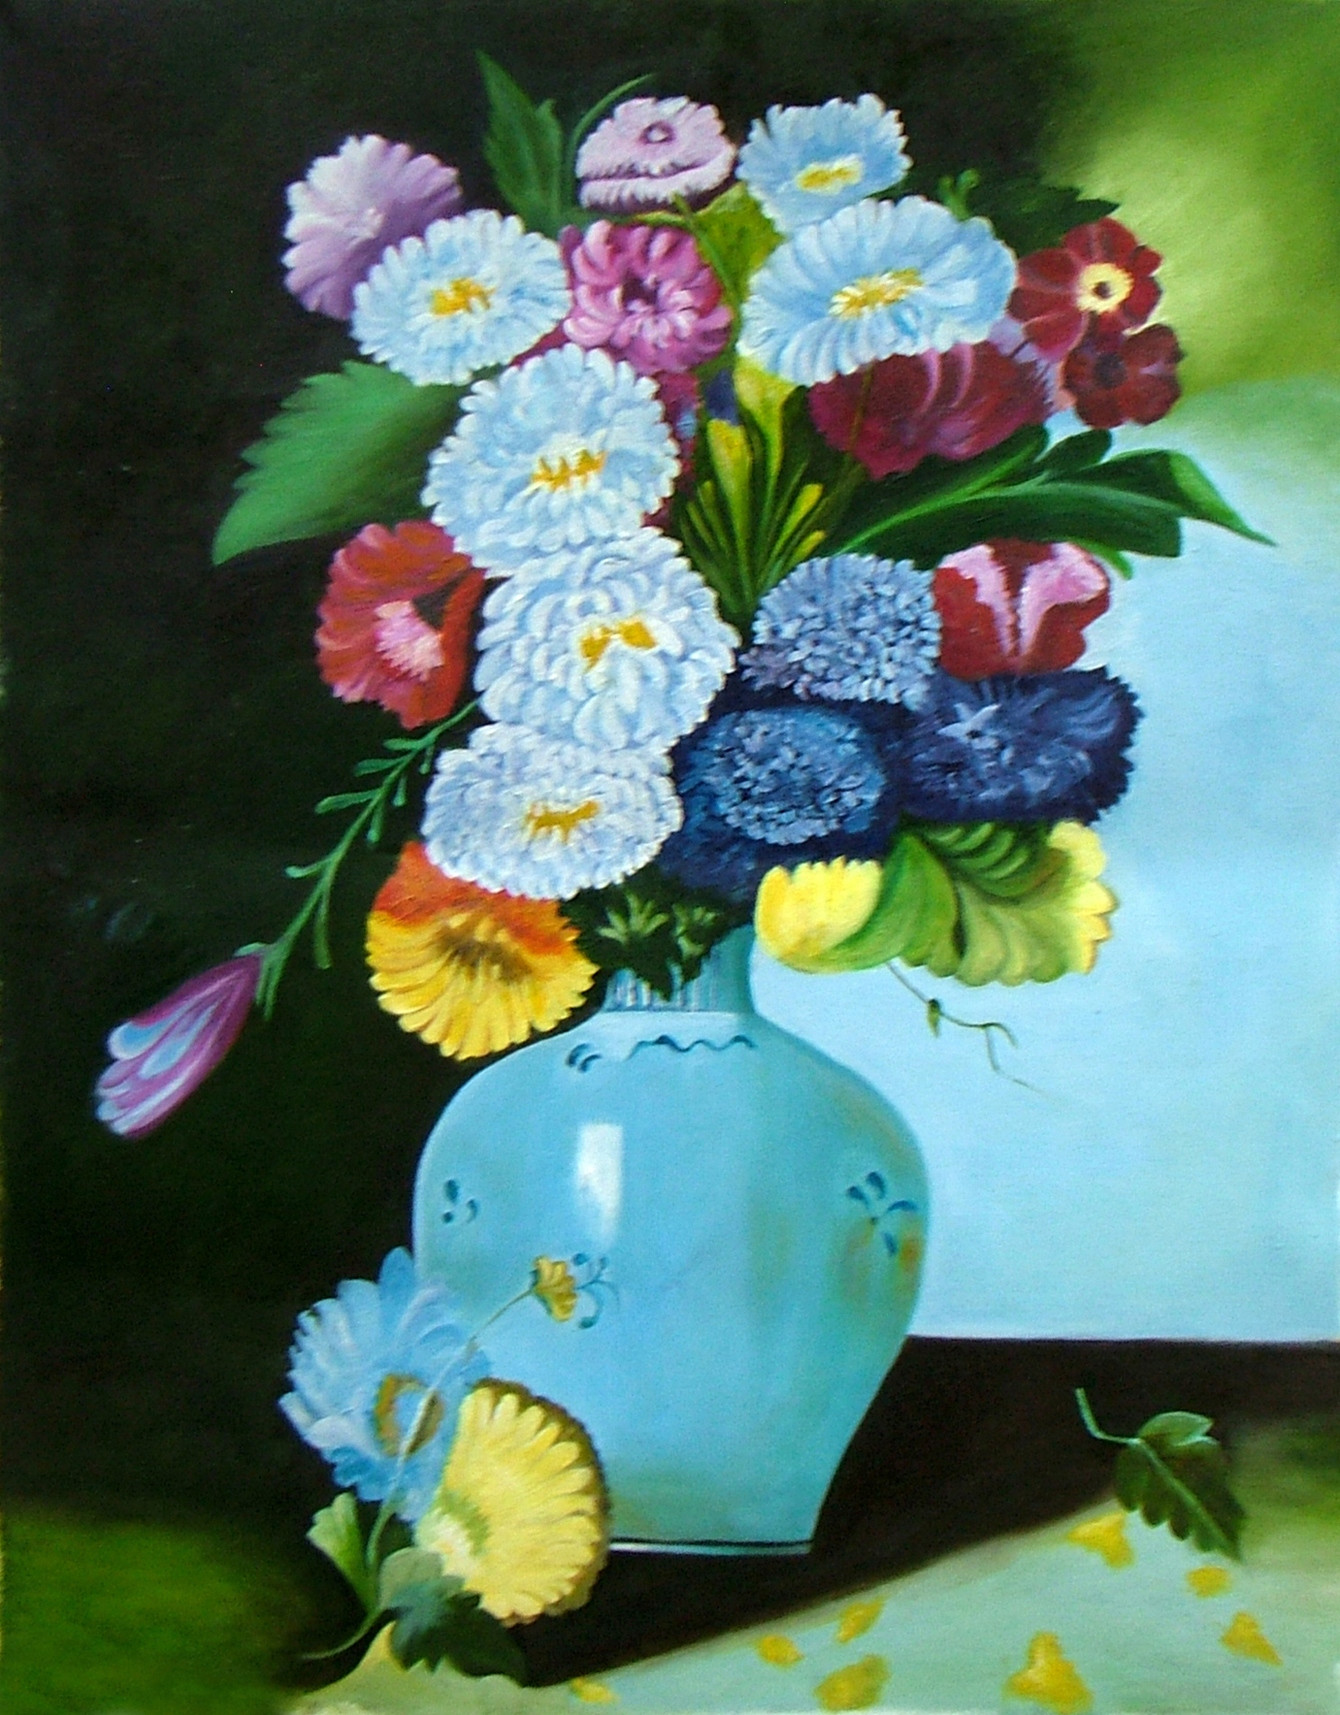 galaxy art glass vase of 25 luxury flower vase painting watercolor flower decoration ideas throughout flower vase painting watercolor lovely floral galaxy oil painting 2015 by neeraj parswal